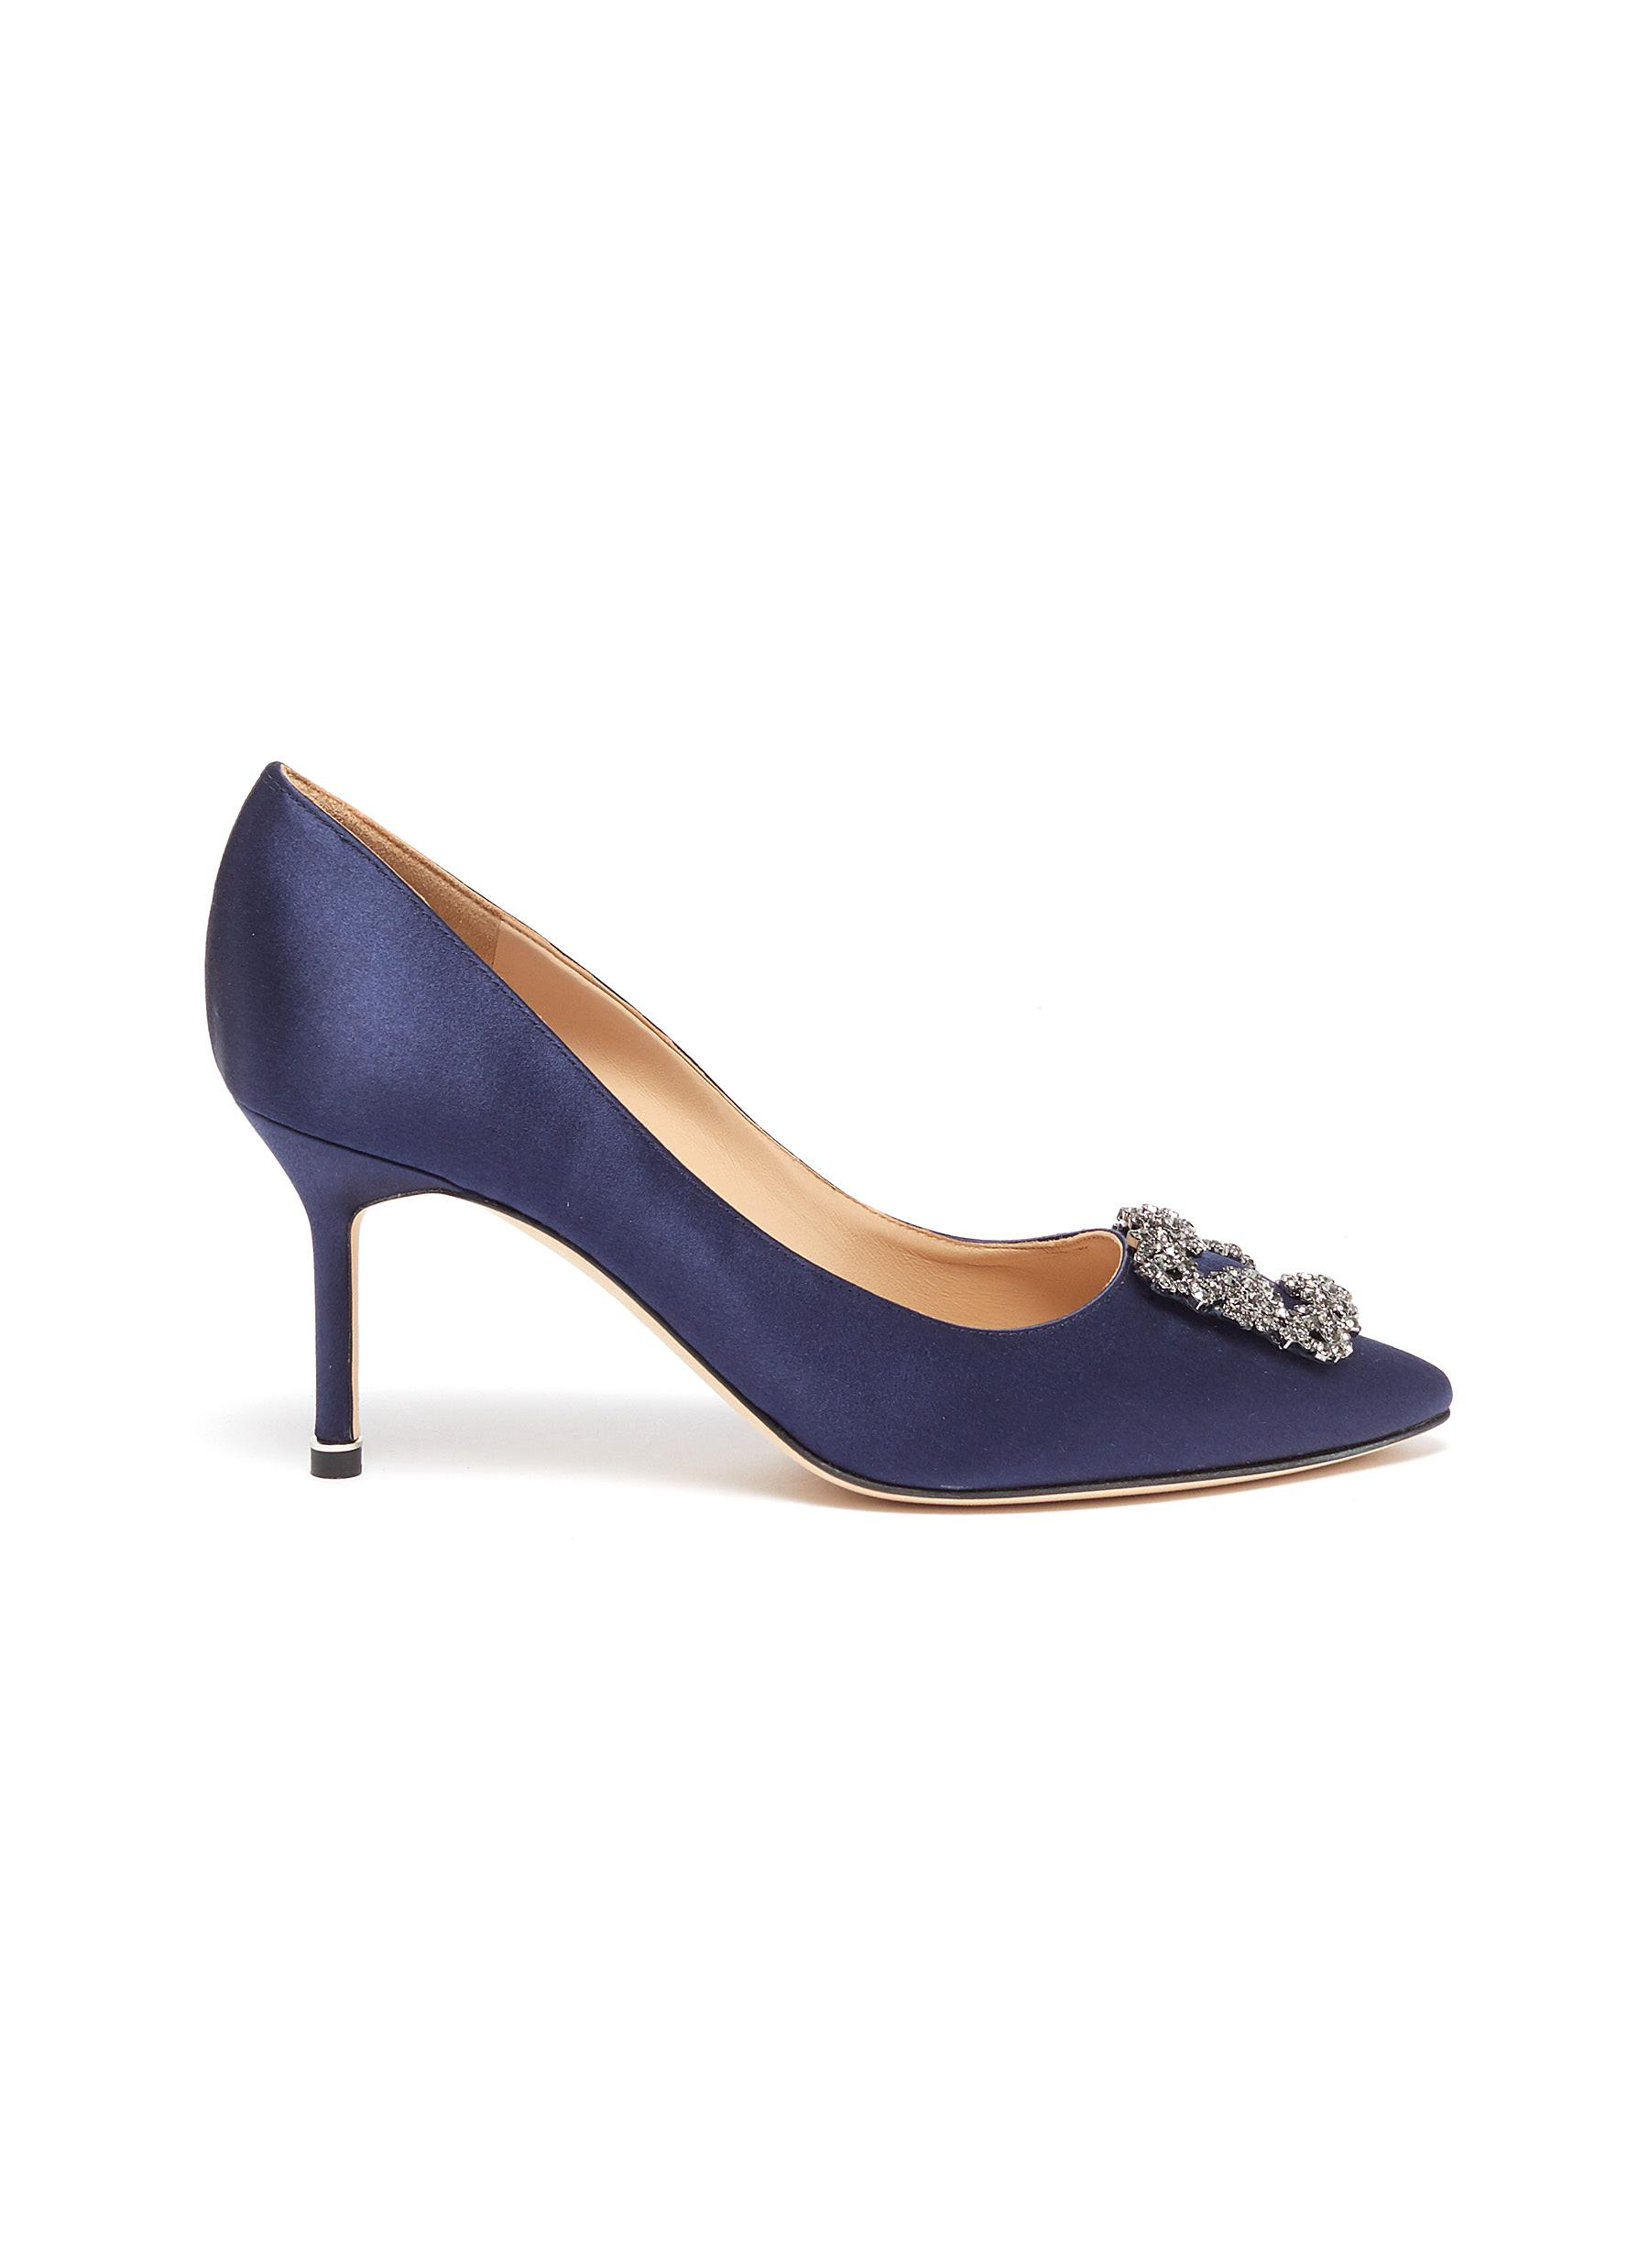 Hangisi 70 Swarovski crystal brooch satin pumps by Manolo Blahnik